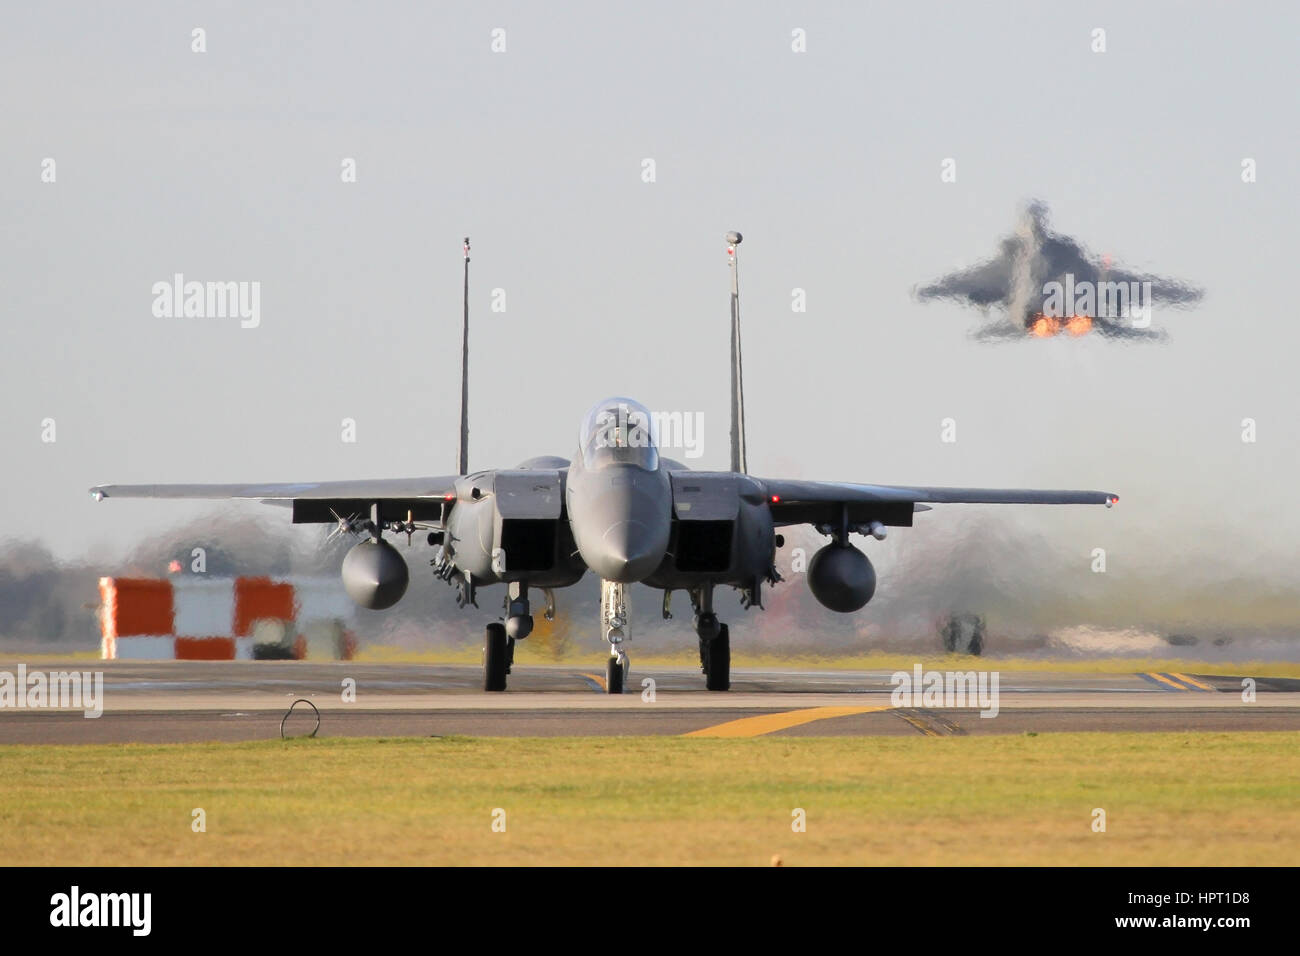 One F-15E  from the 48th Fighter Wing rotates off the runway at RAF Lakenheath as another taxies to the runway. - Stock Image